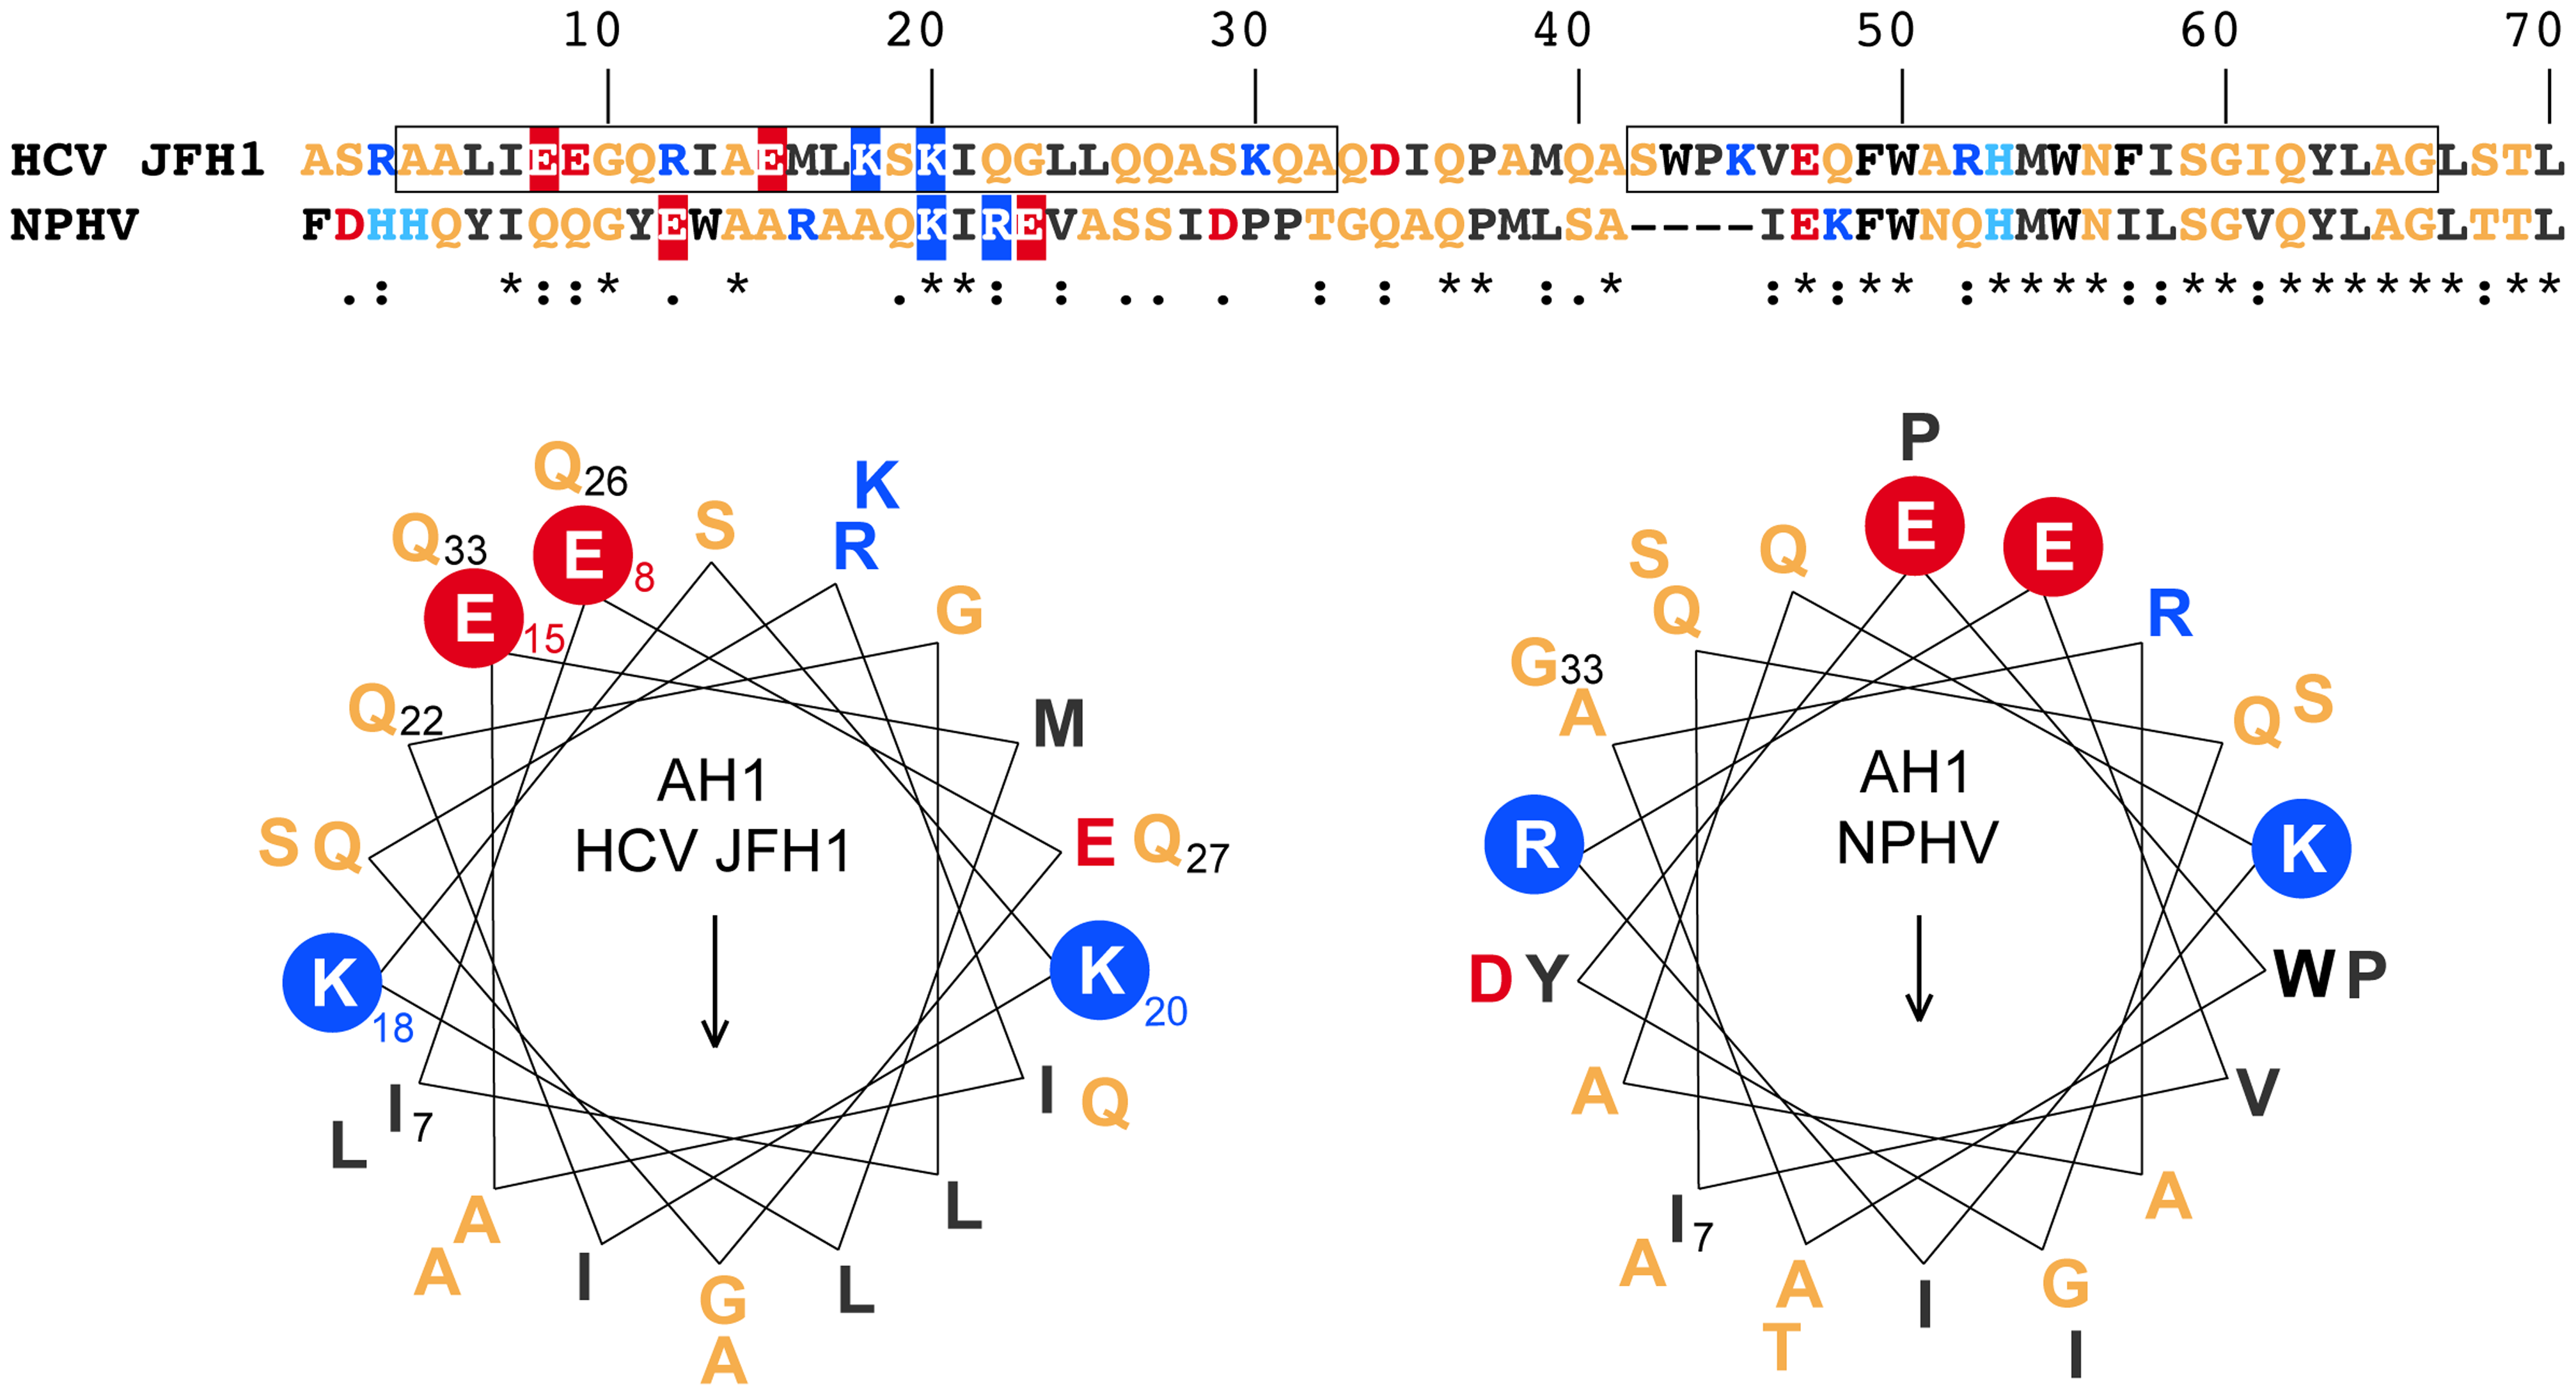 NS4B AH1 is structurally conserved among phylogenetically distant hepaciviruses.